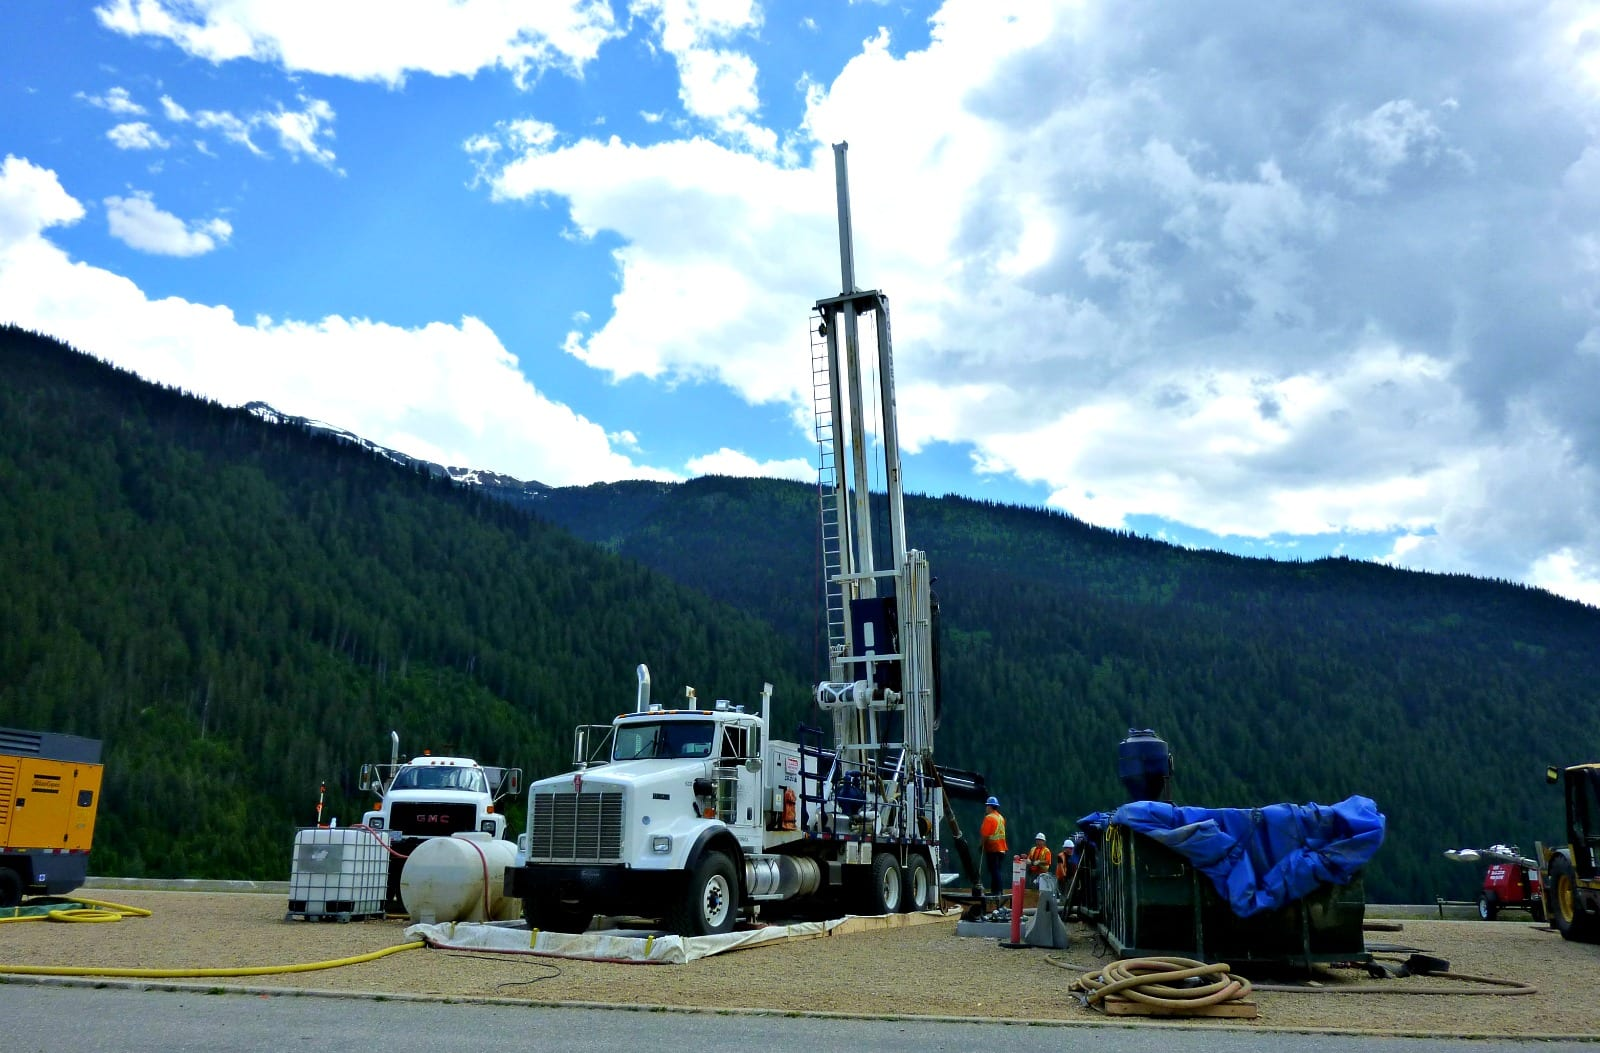 Chilliwack Dual Rotary Water Well Drilling Method - Irrigation System Boundary Road